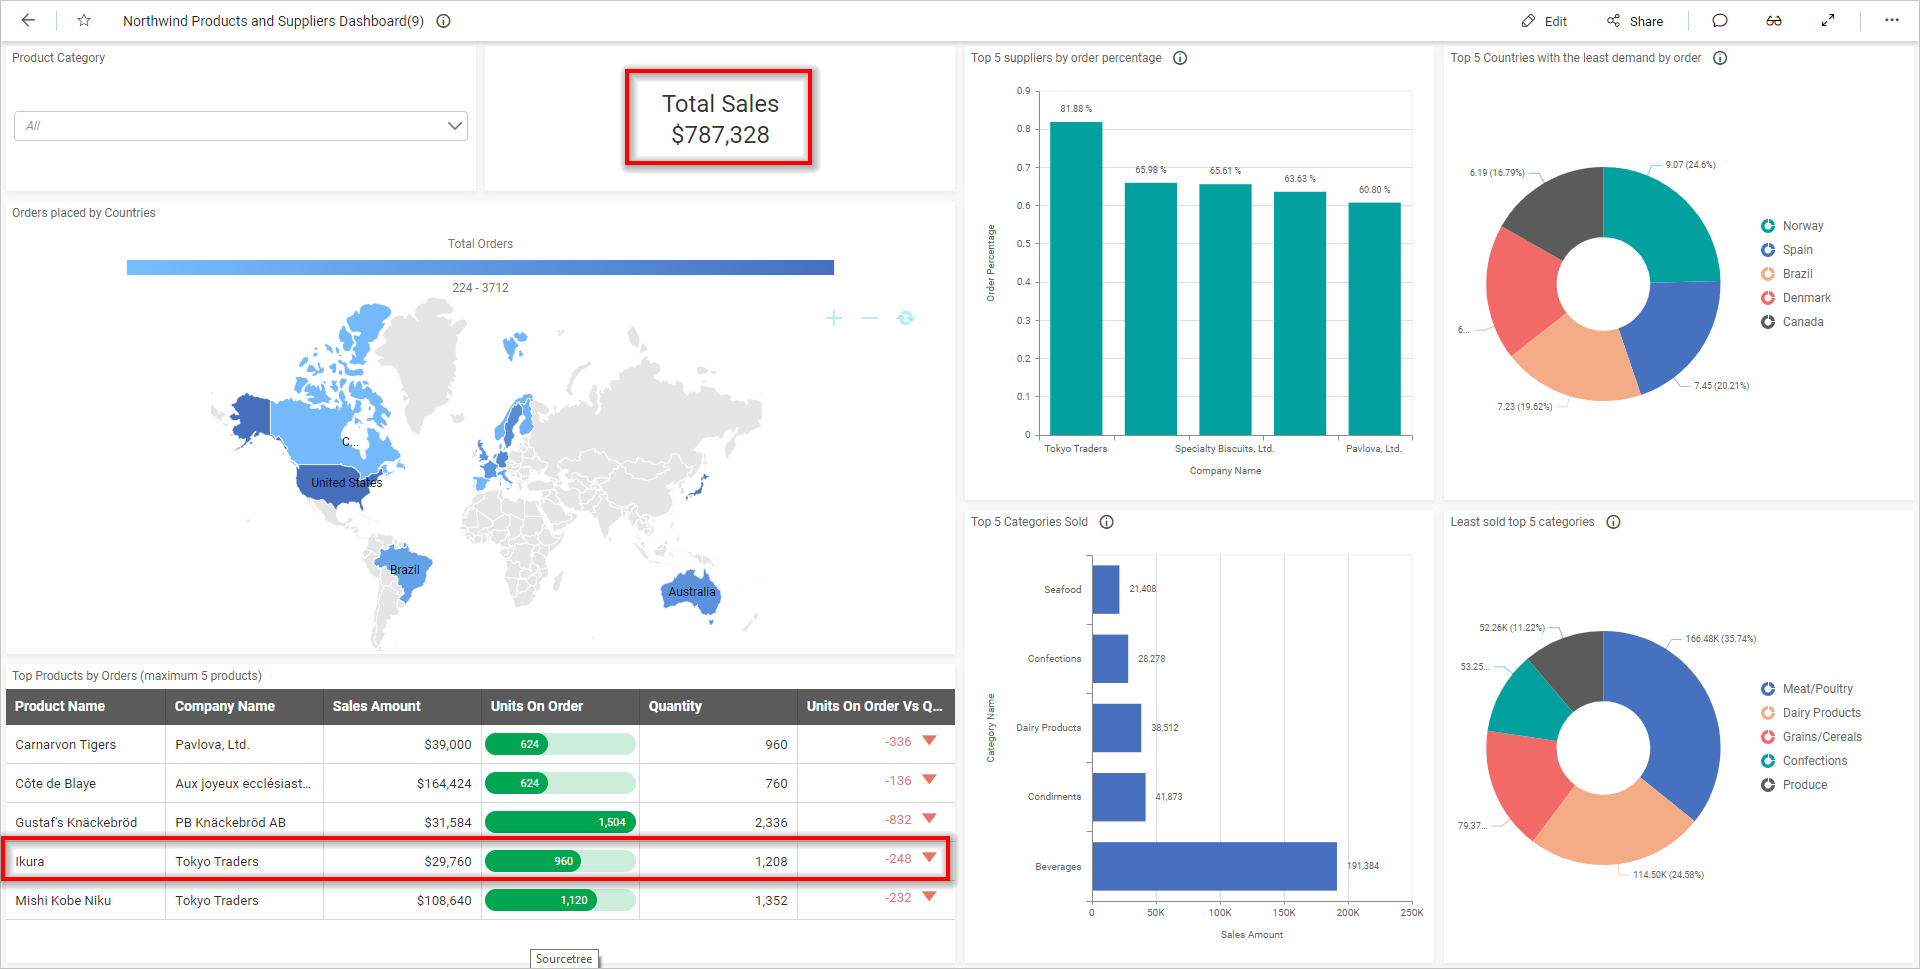 Updated data in Northwind Products and Suppliers analysis dashboard